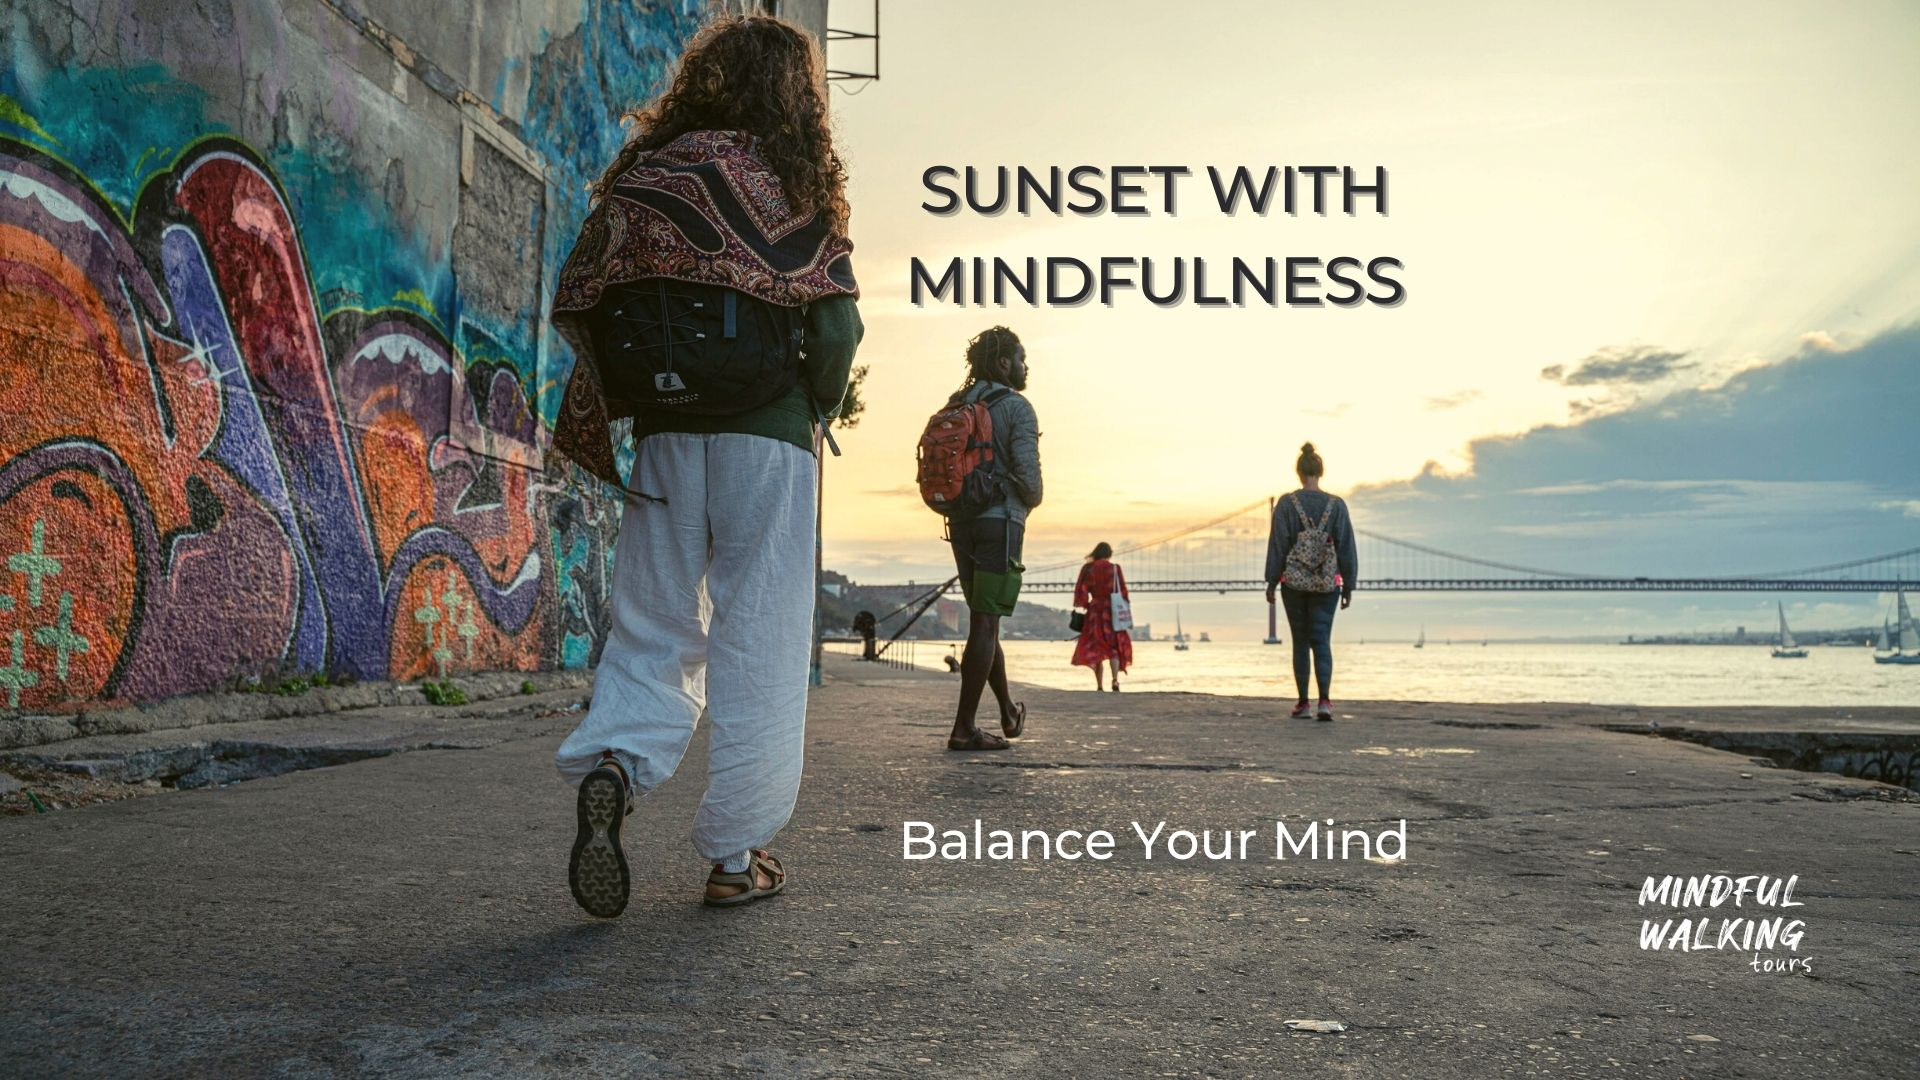 SUNSET WITH MINDFULNESS